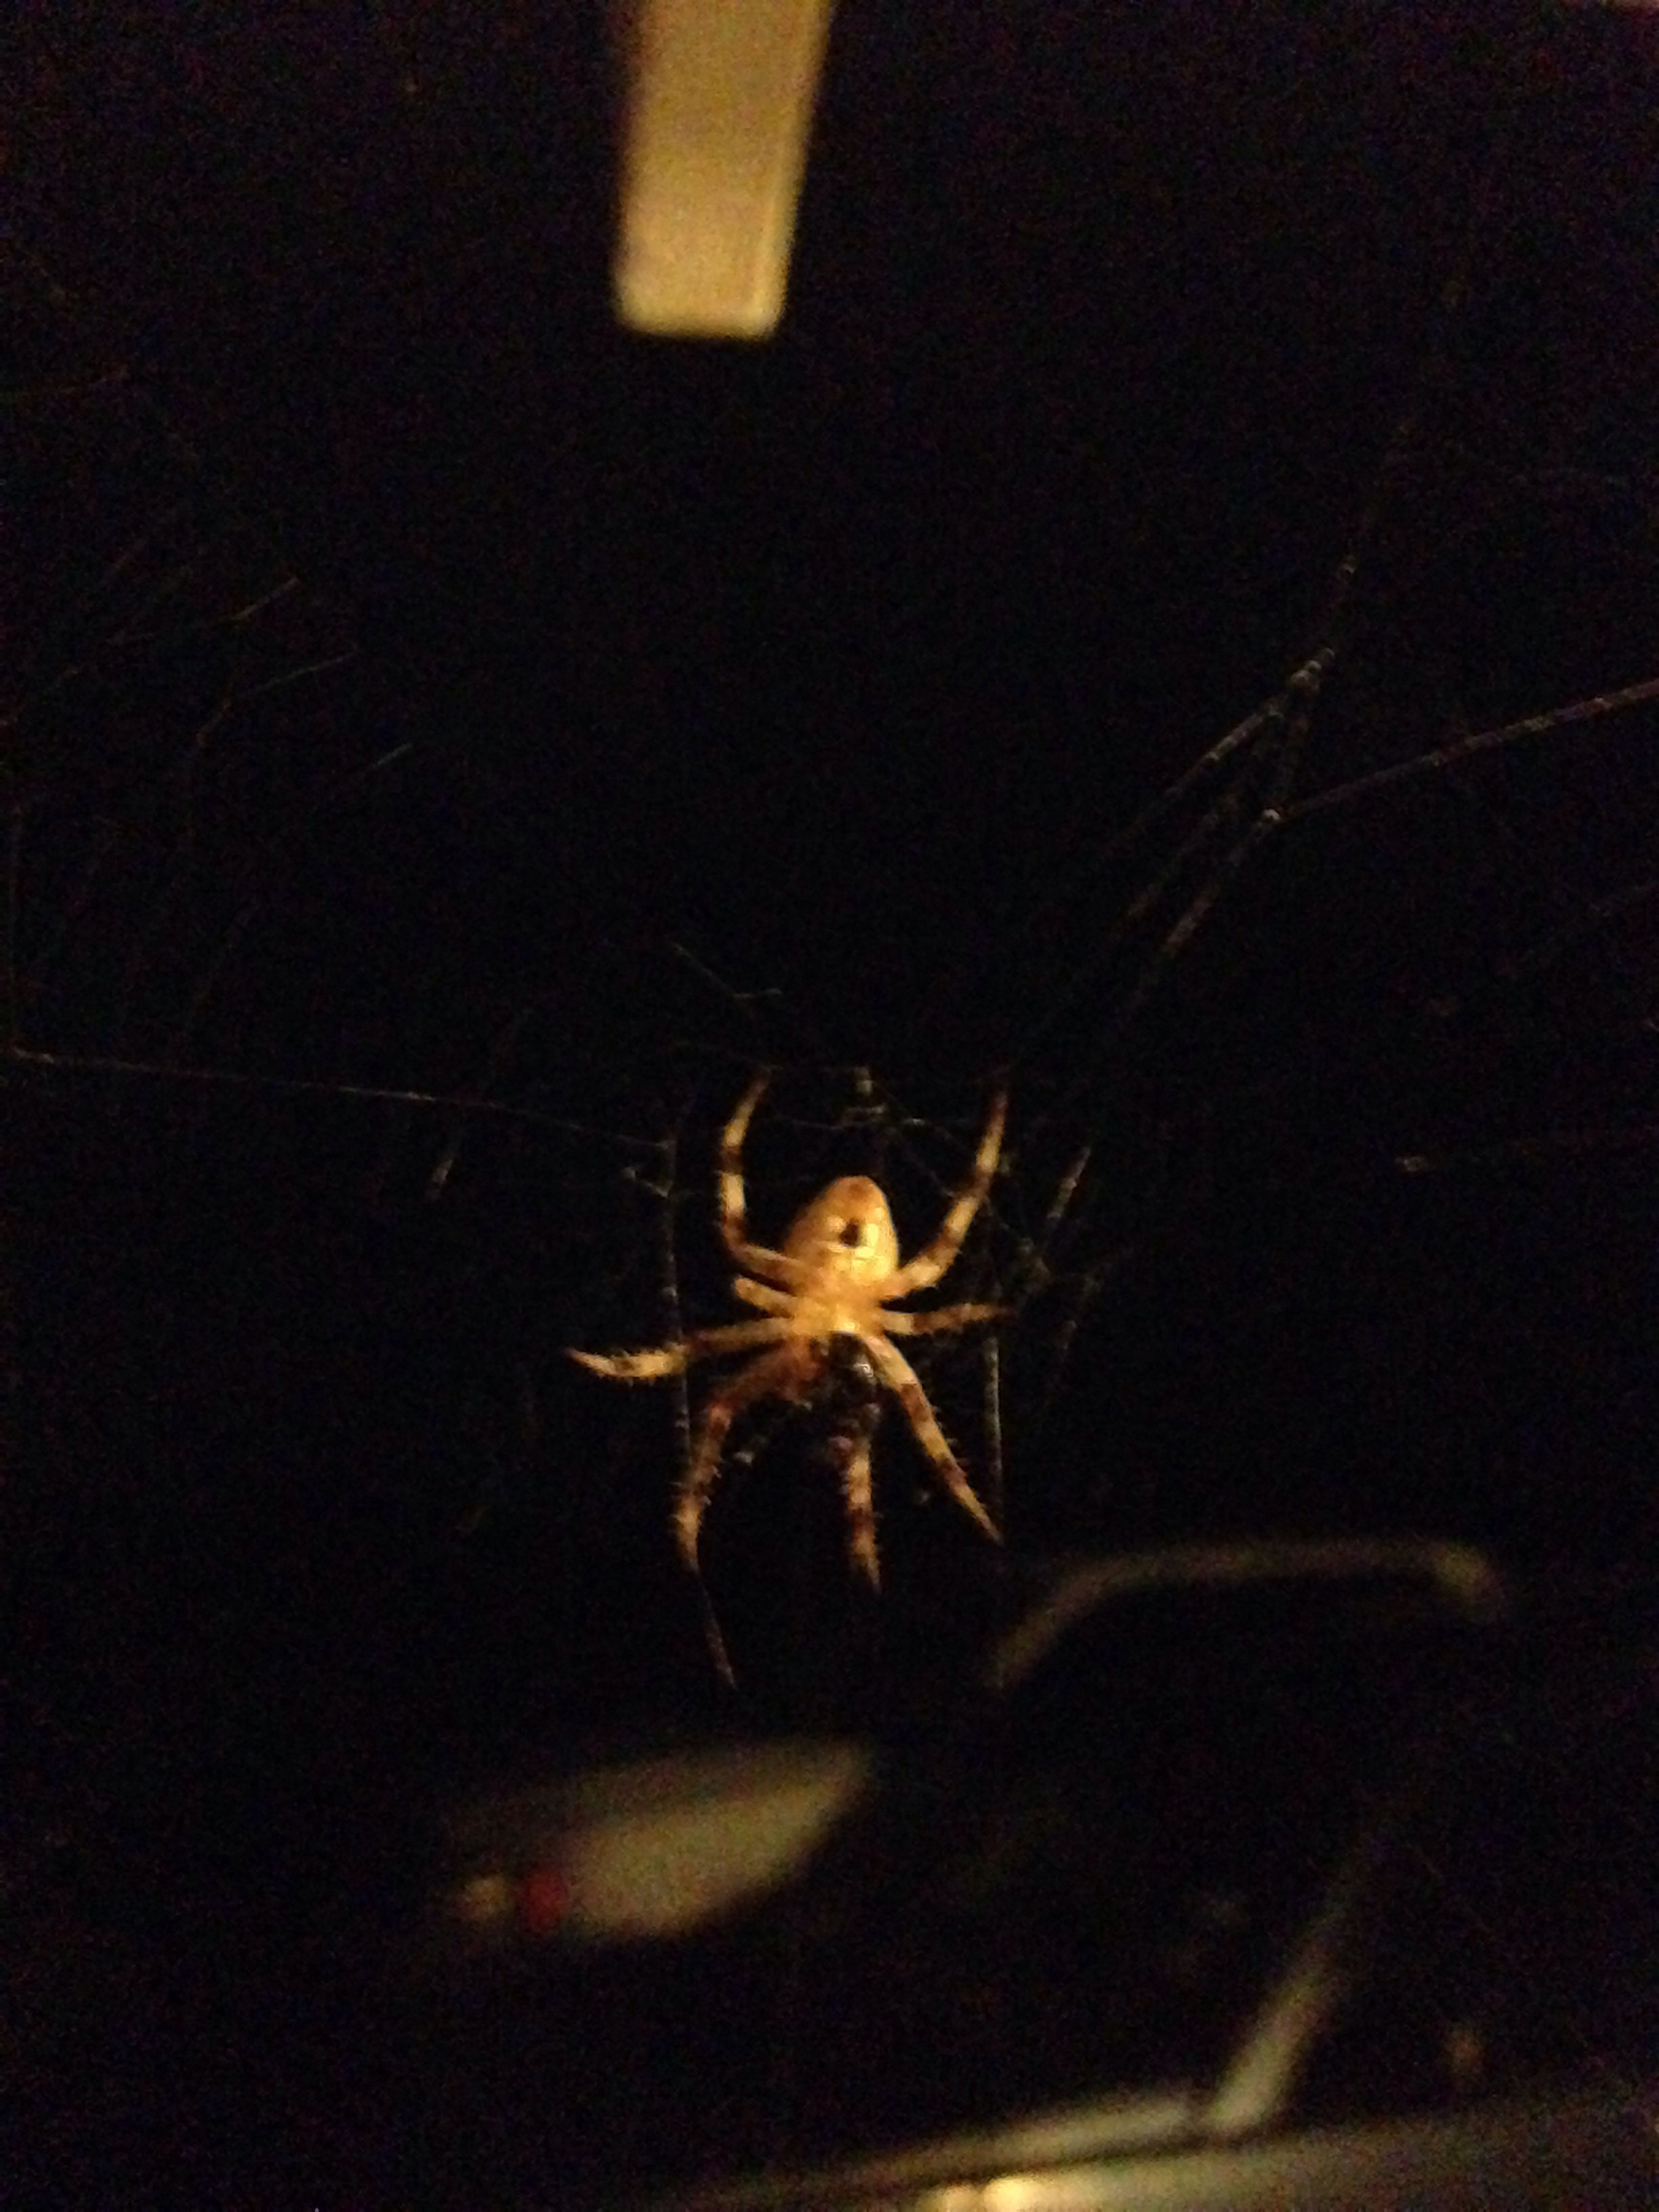 Pic I took of a spider